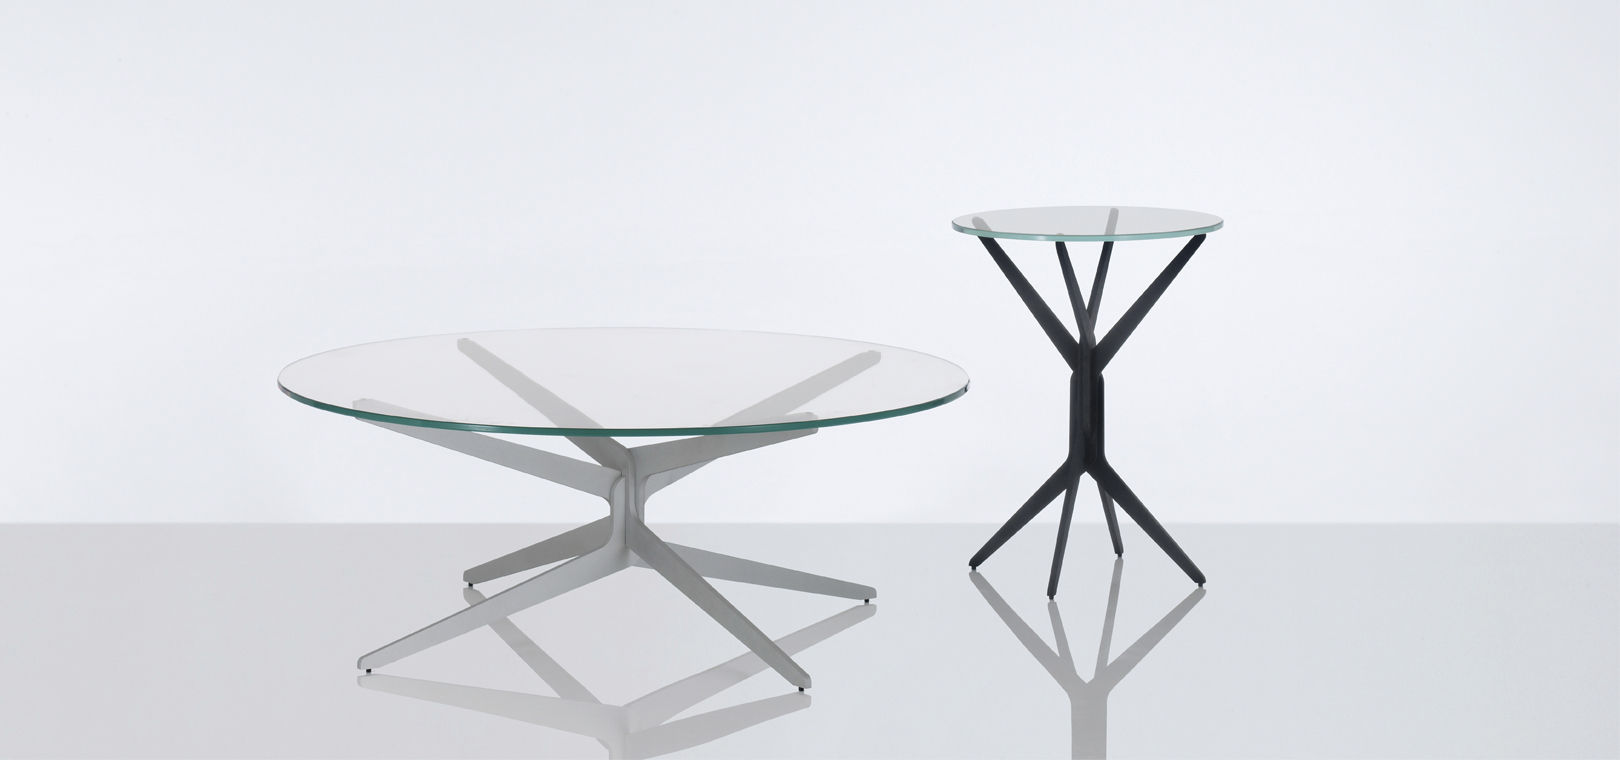 Wooden Furniture Made By Compressure Molding Was Founded In 1983 With The Aim Glass For Coffee Table Of Increasing The Interest For This Technique (Image 9 of 9)